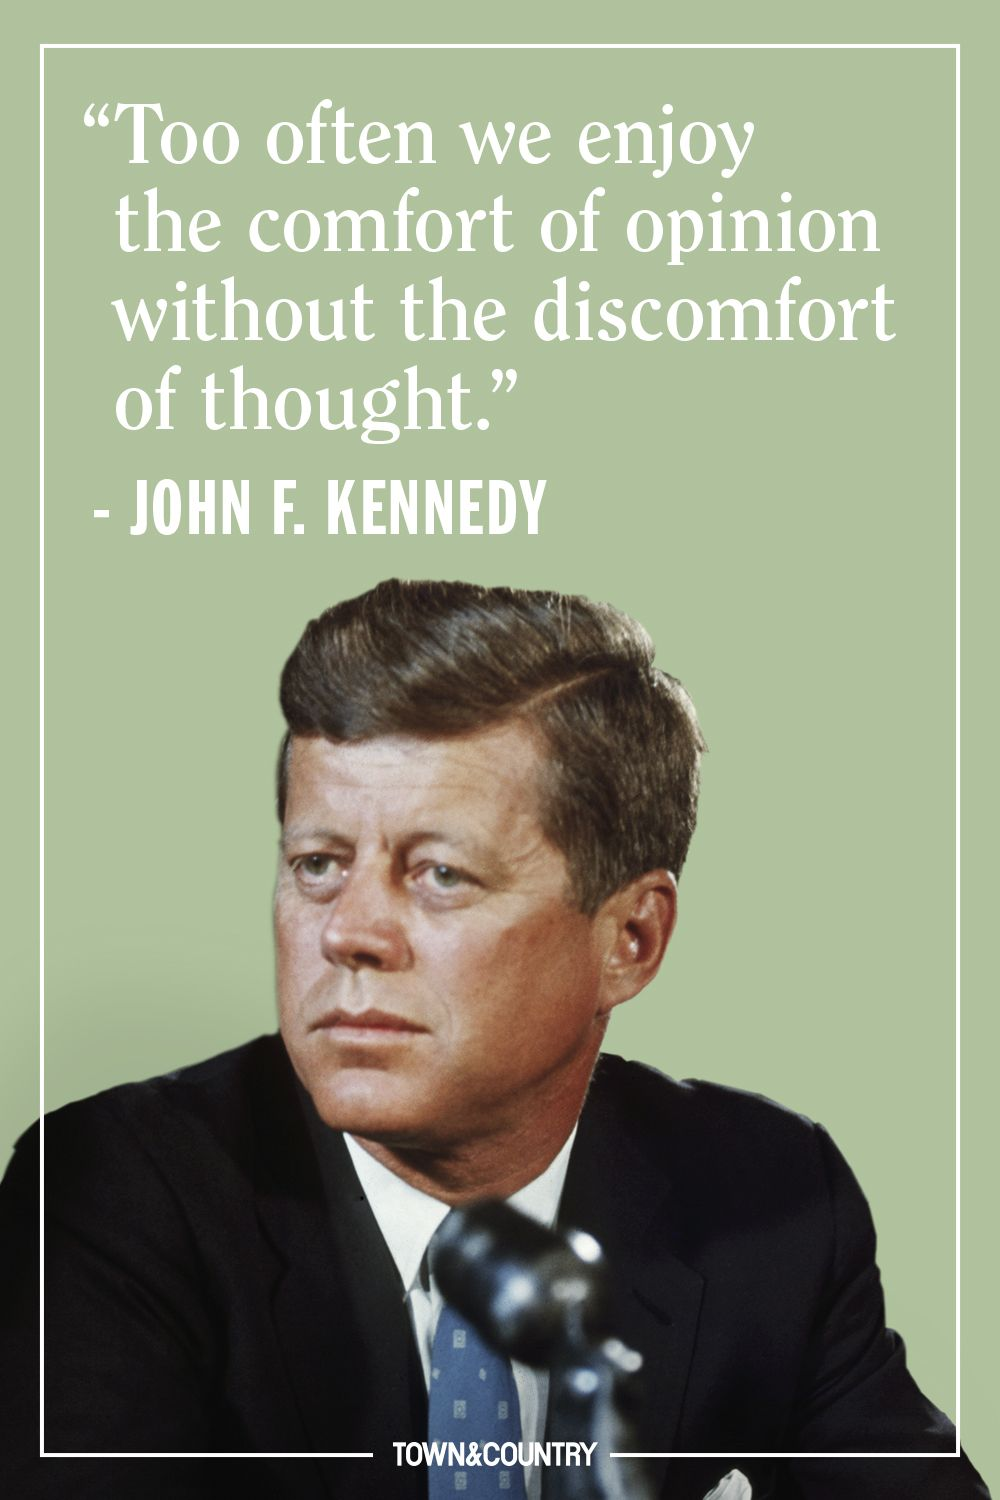 Jfk Quotes | 12 Best Jfk Quotes Of All Time Famous John F Kennedy Quotes